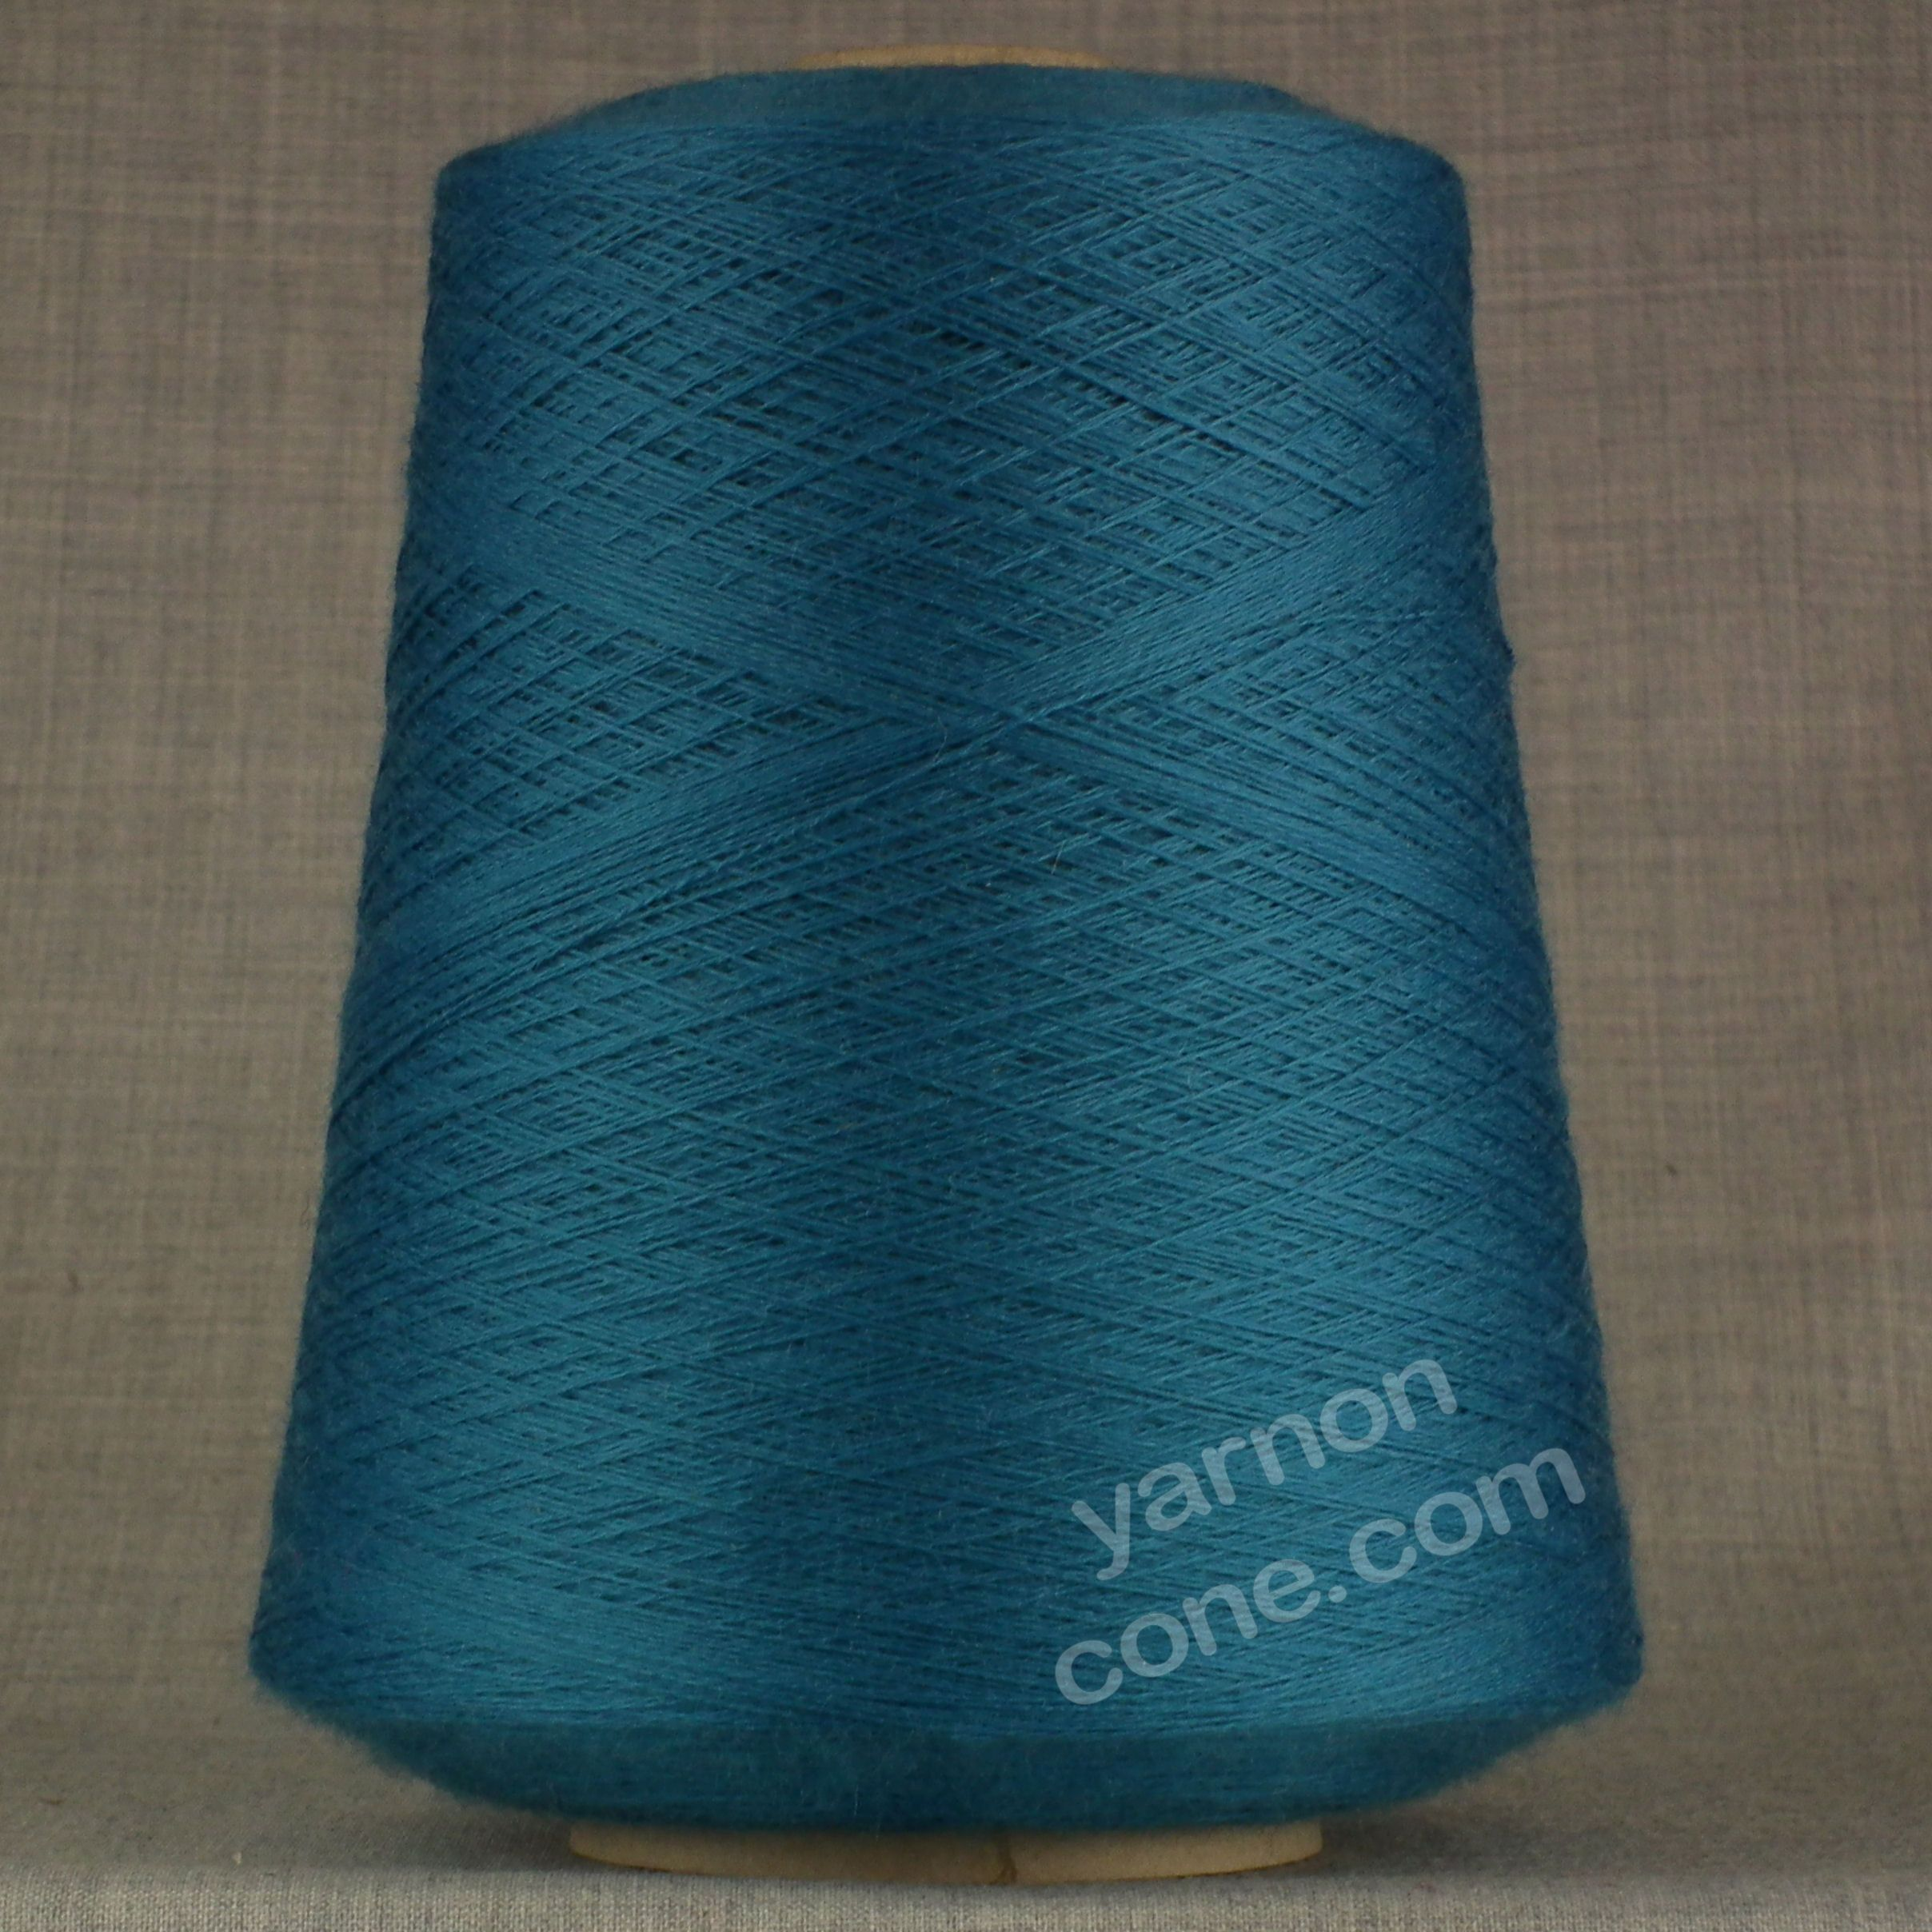 2/30s laceweight cobweb knitting machine yarn pure merino wool petrol blue